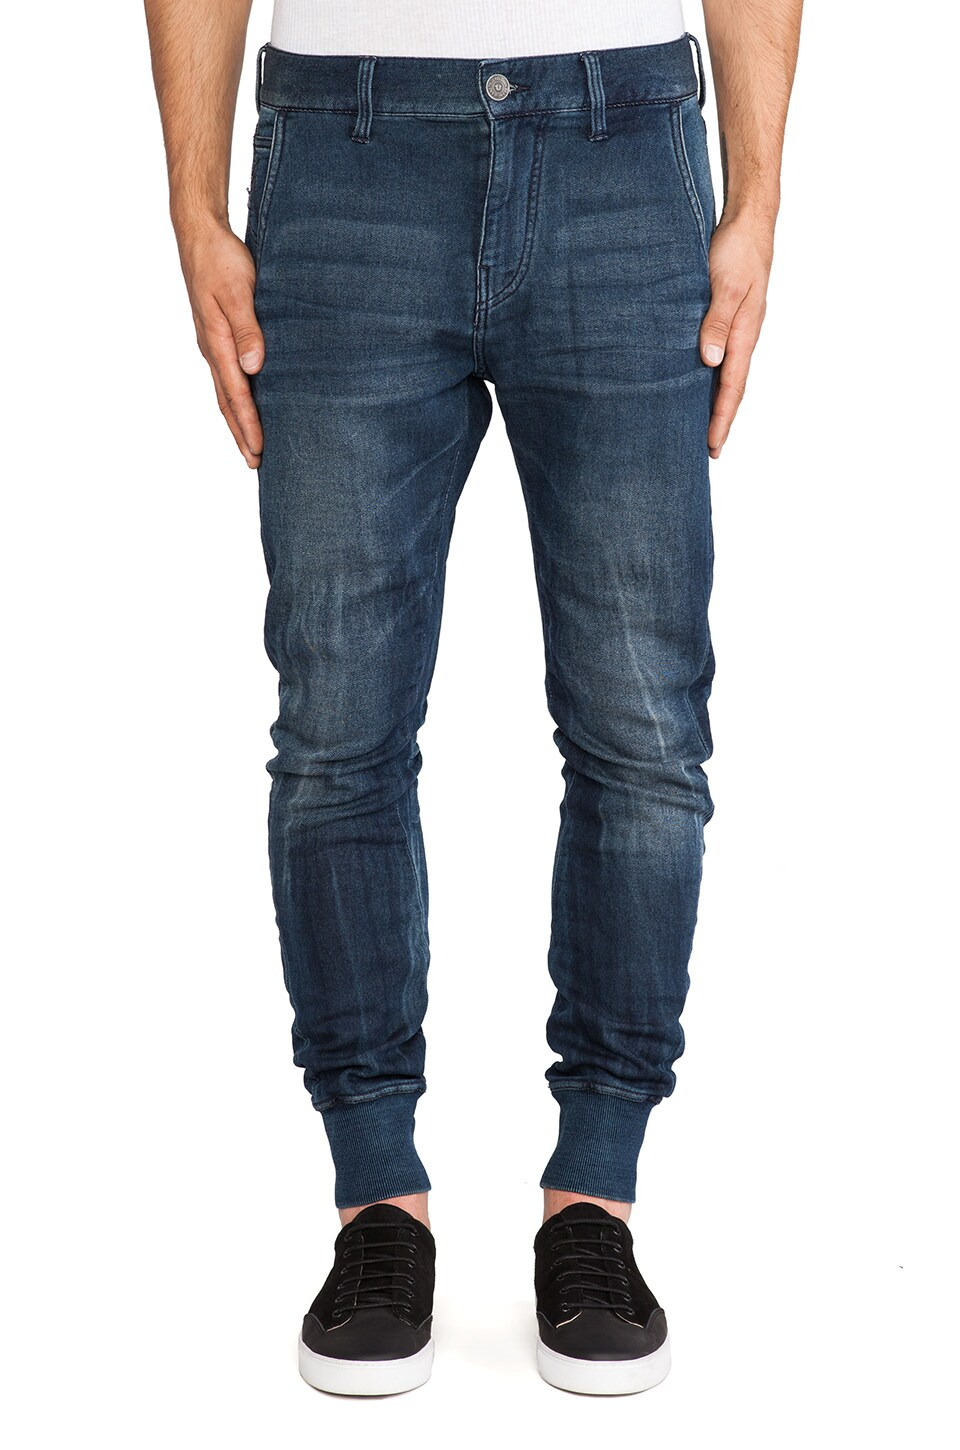 True Religion Runner in Indigo